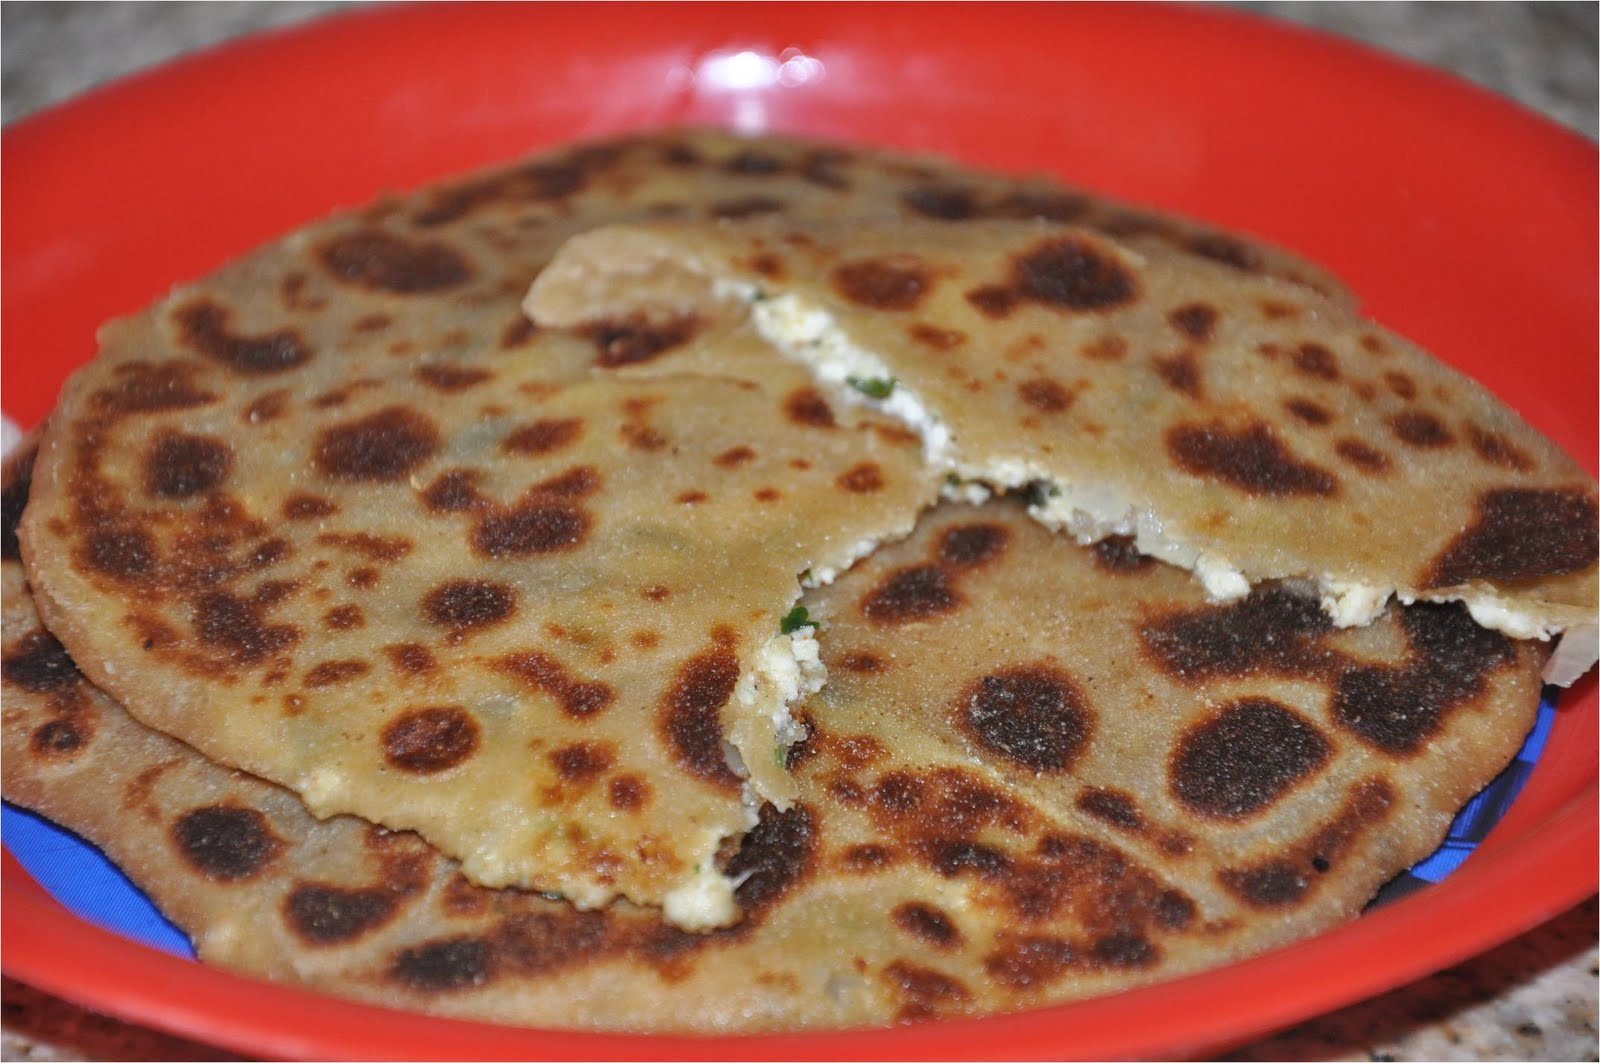 ... Recipes - Rajasthan A State in Western India: Paneer and Pyaaz Paratha